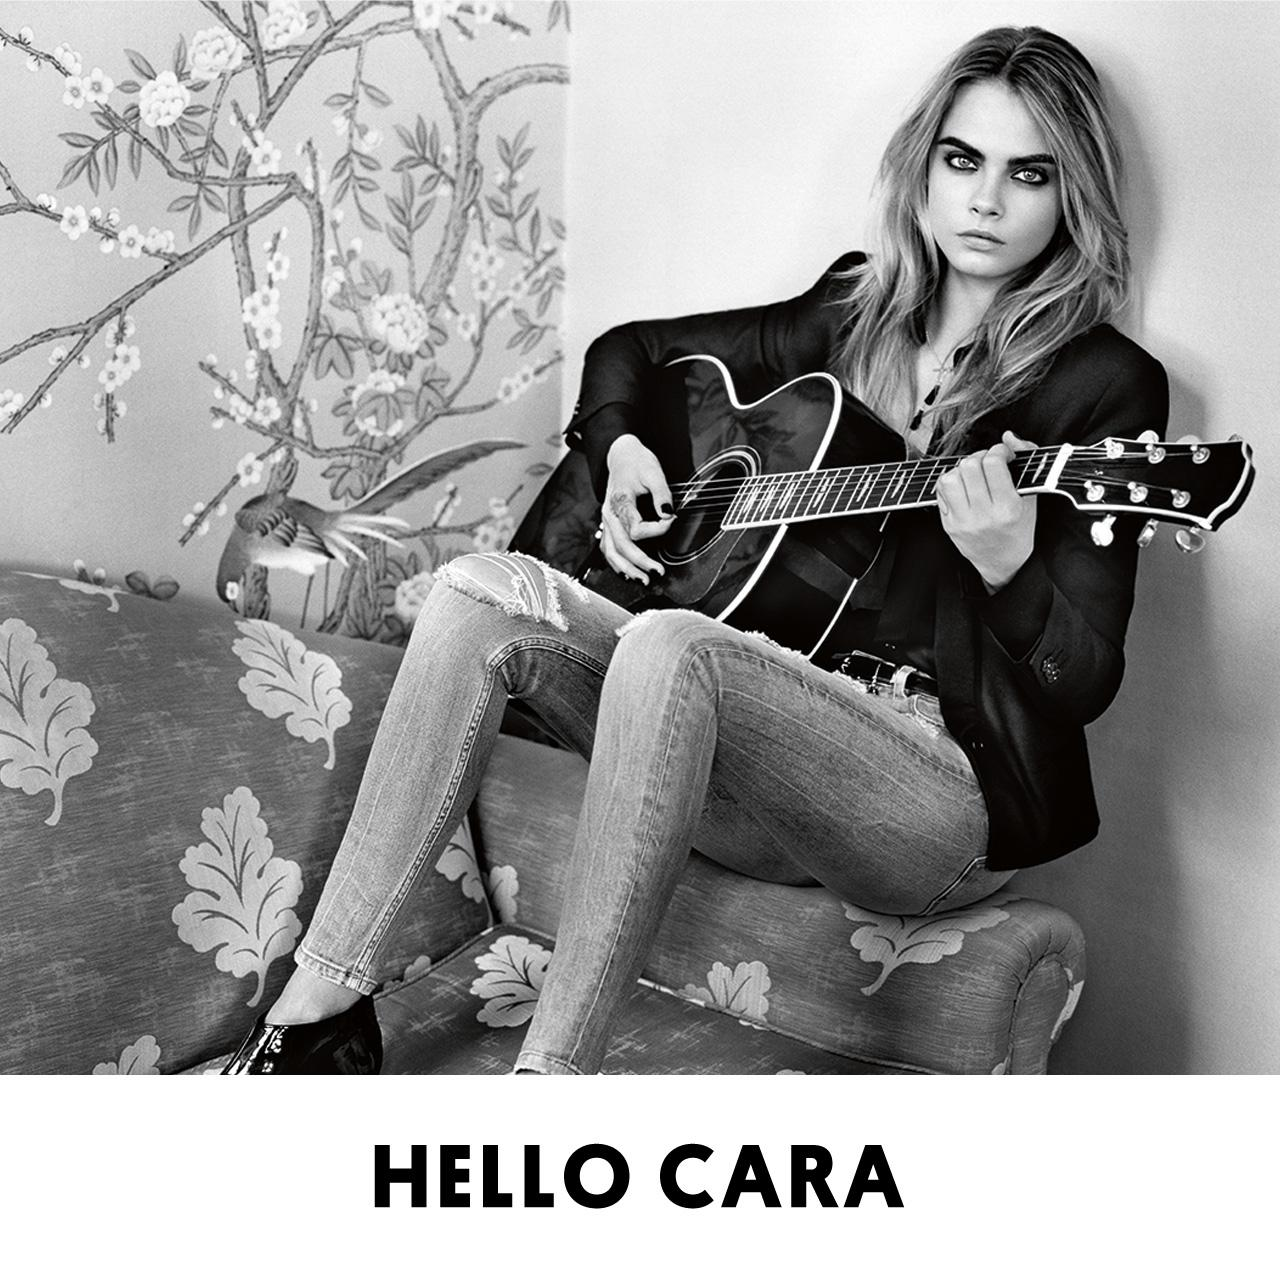 RT @Topshop: Guess who? Our campaign girl for AW14 is the one and only @CaraDelevingne #ilovetopshop http://t.co/dP4fxrp4dZ  http://t.co/Ty…